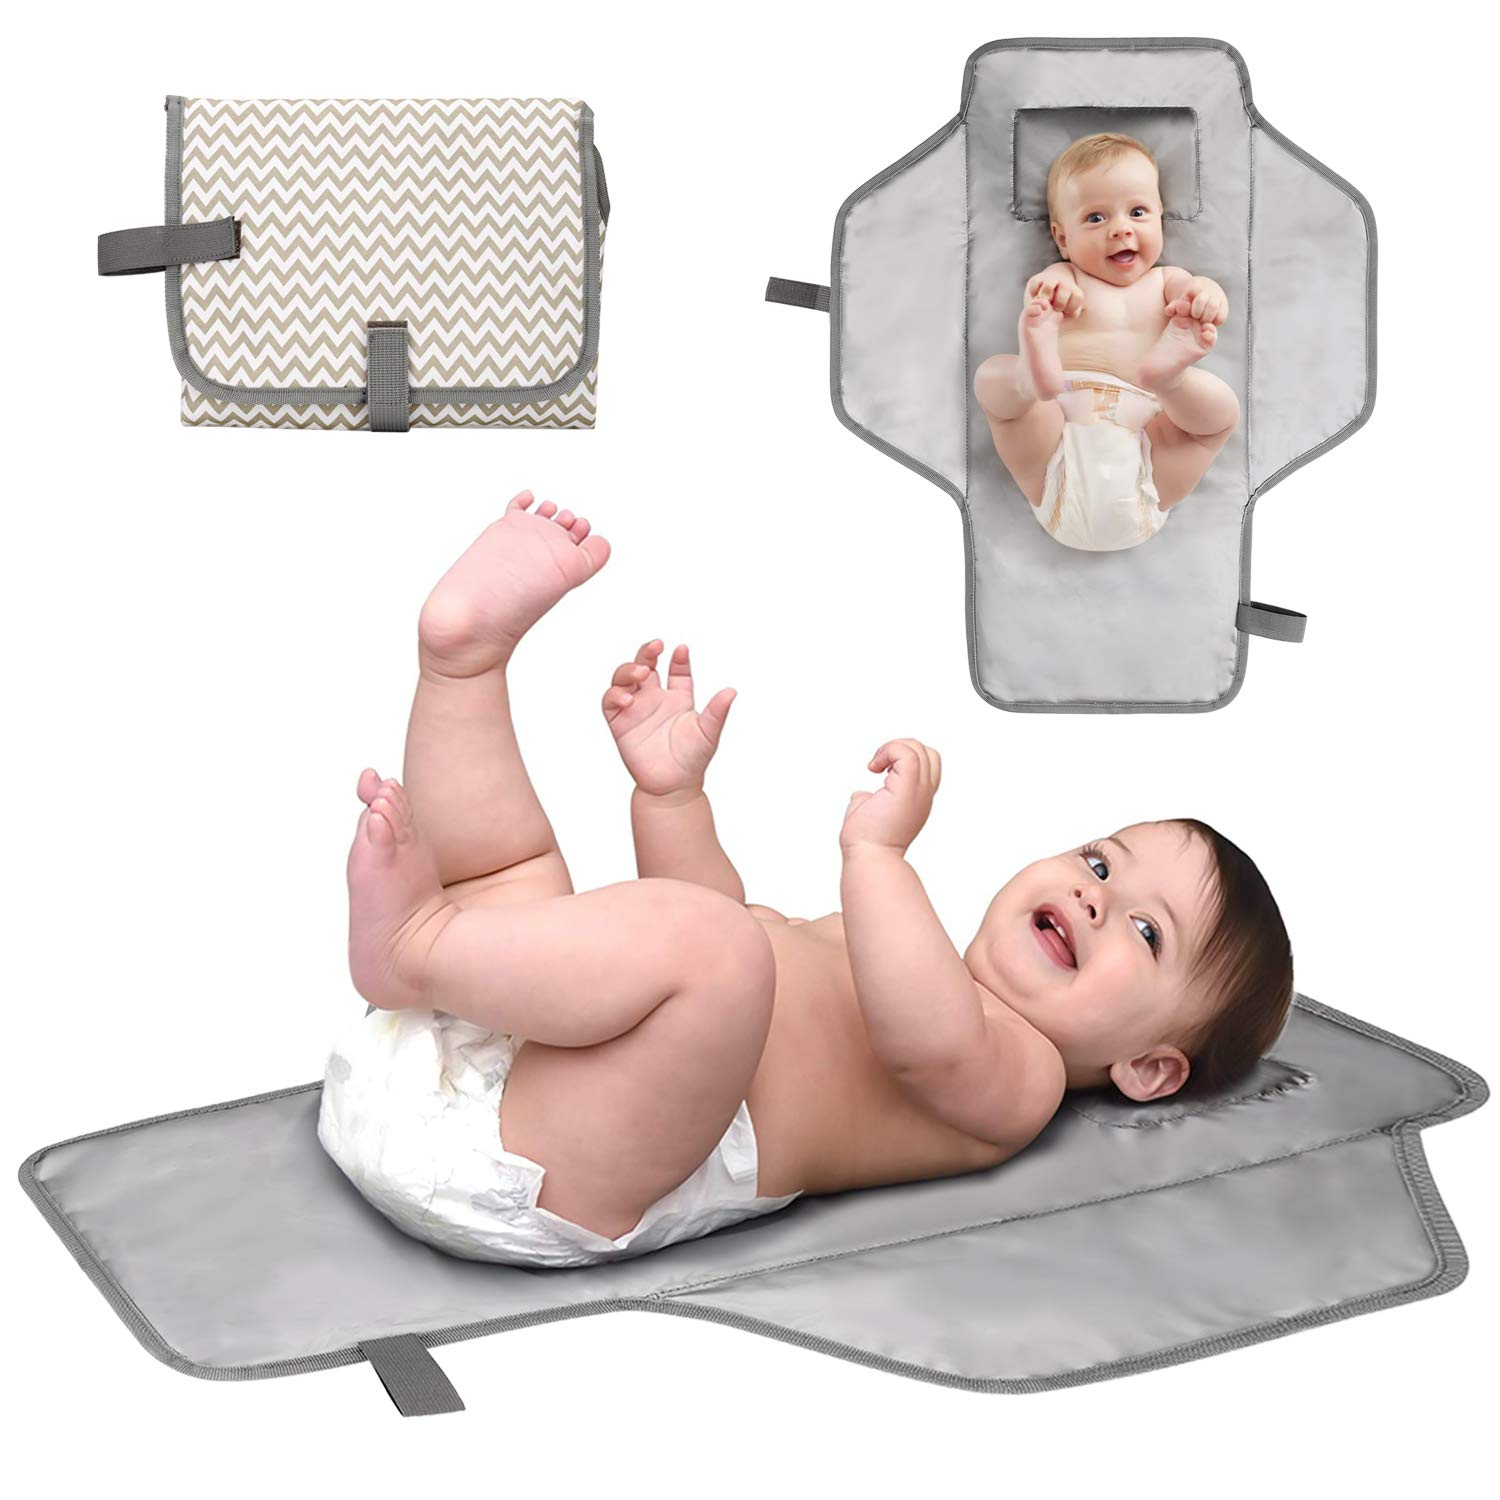 BAGLHER丨Portable Changing Pad,Waterproof Baby Portable Diaper Changing Table with Pillows,Thickened Padding Diaper Pad,Ripple